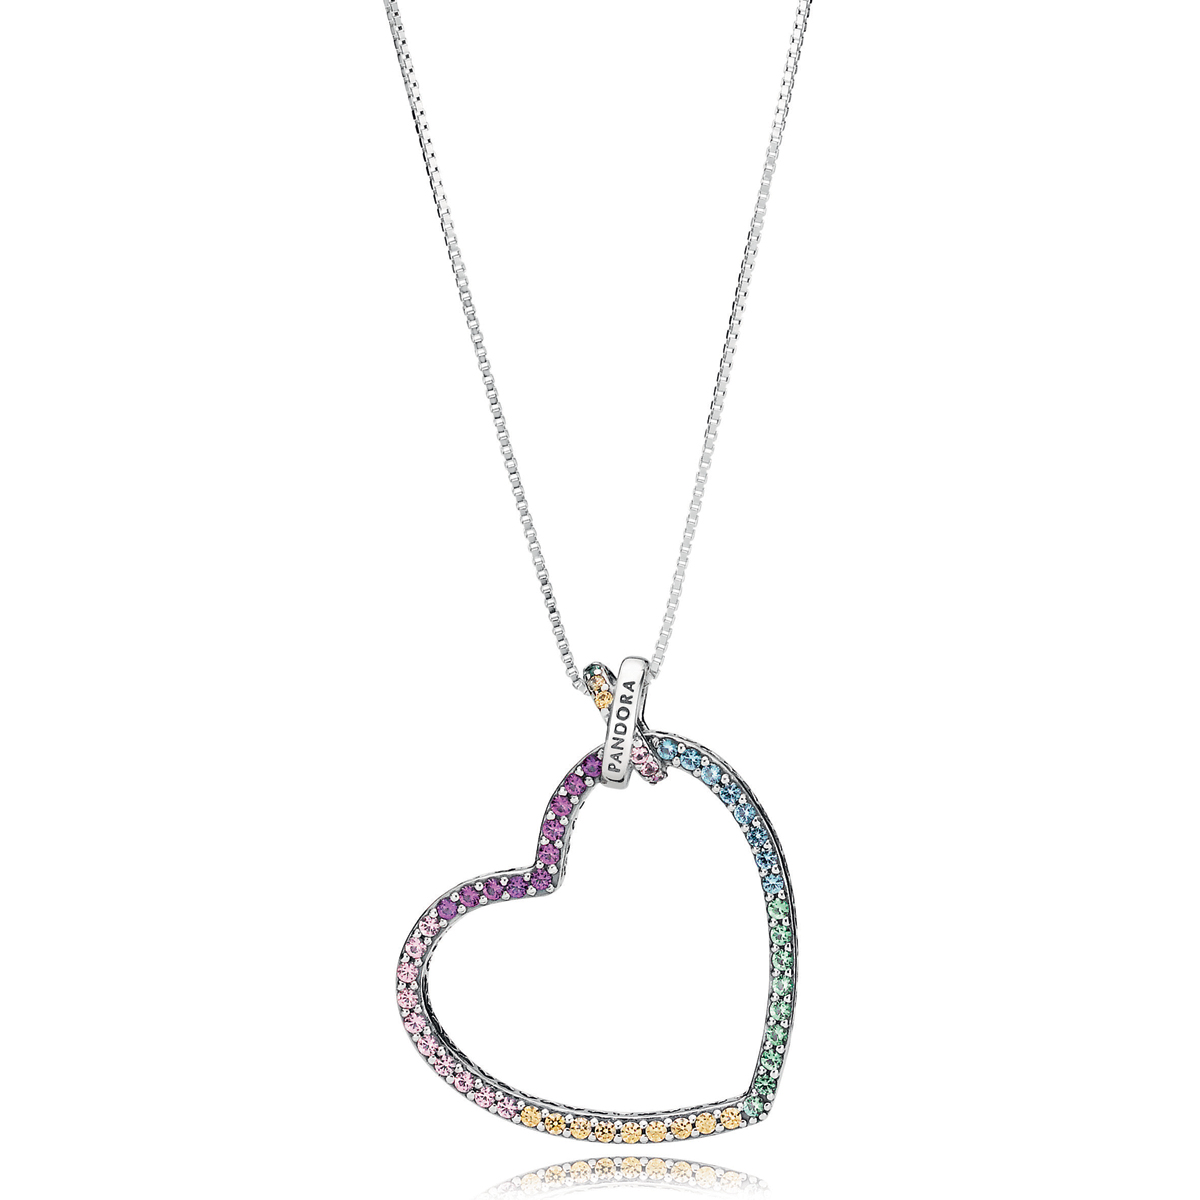 j il anniversary pendant jewellery necklace r product gold gift heart fullxfull diamond jewels